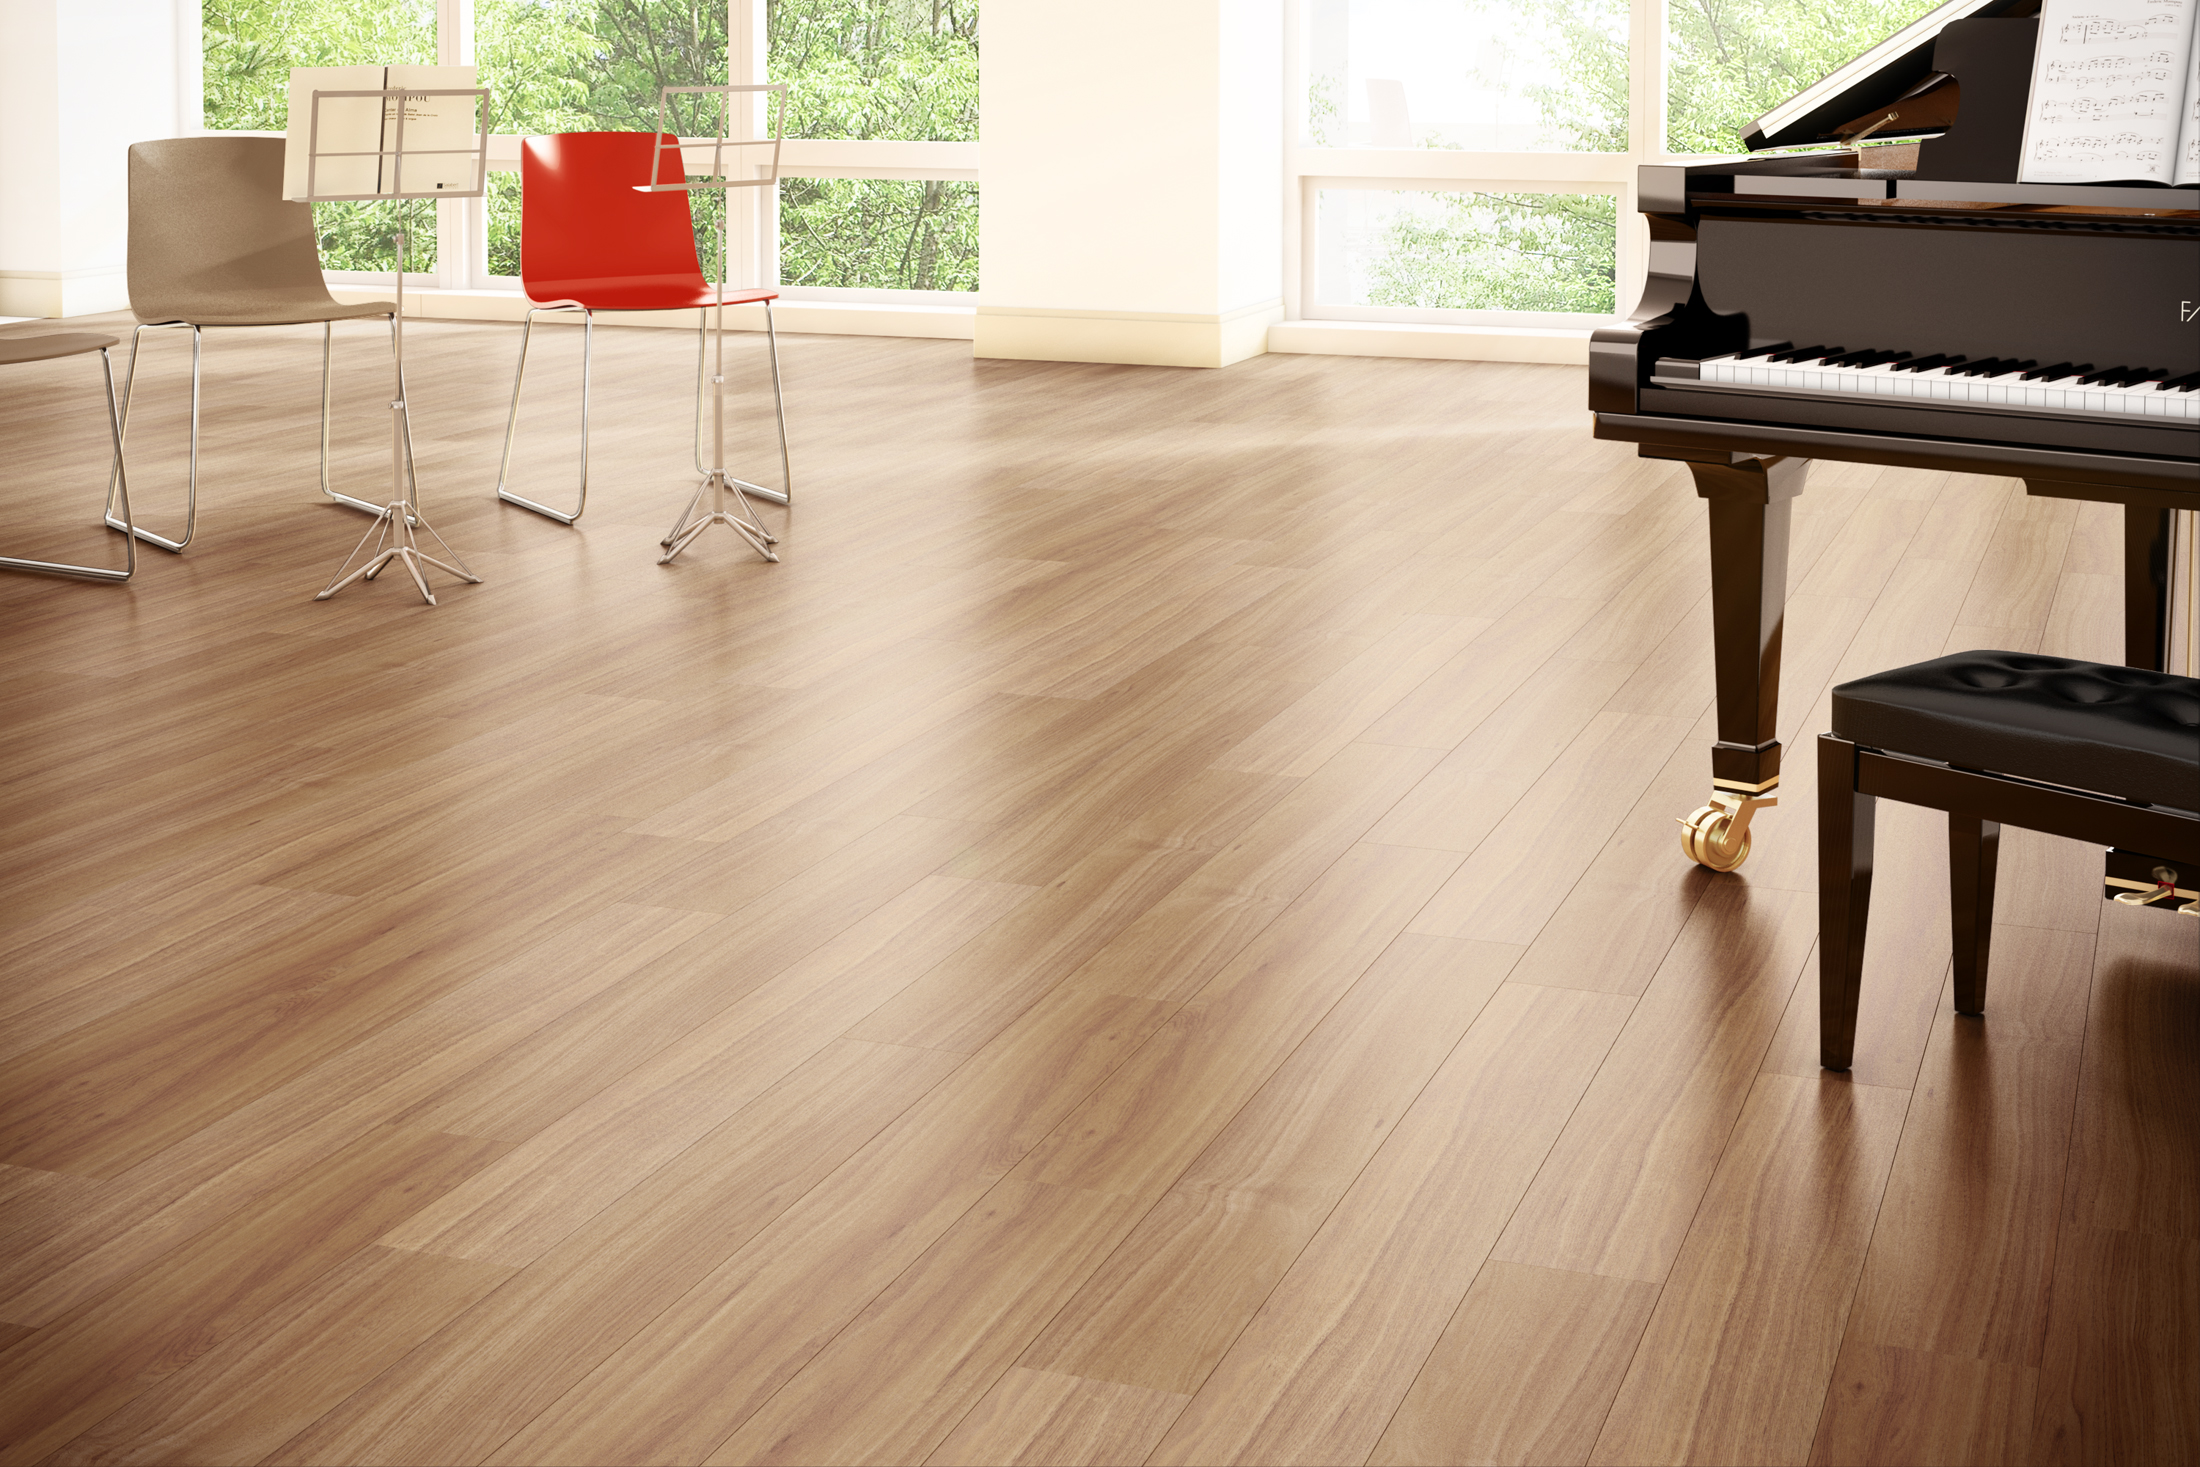 Luxury vinyl flooring vinyl flooring in abu dhabi for Luxury linoleum flooring